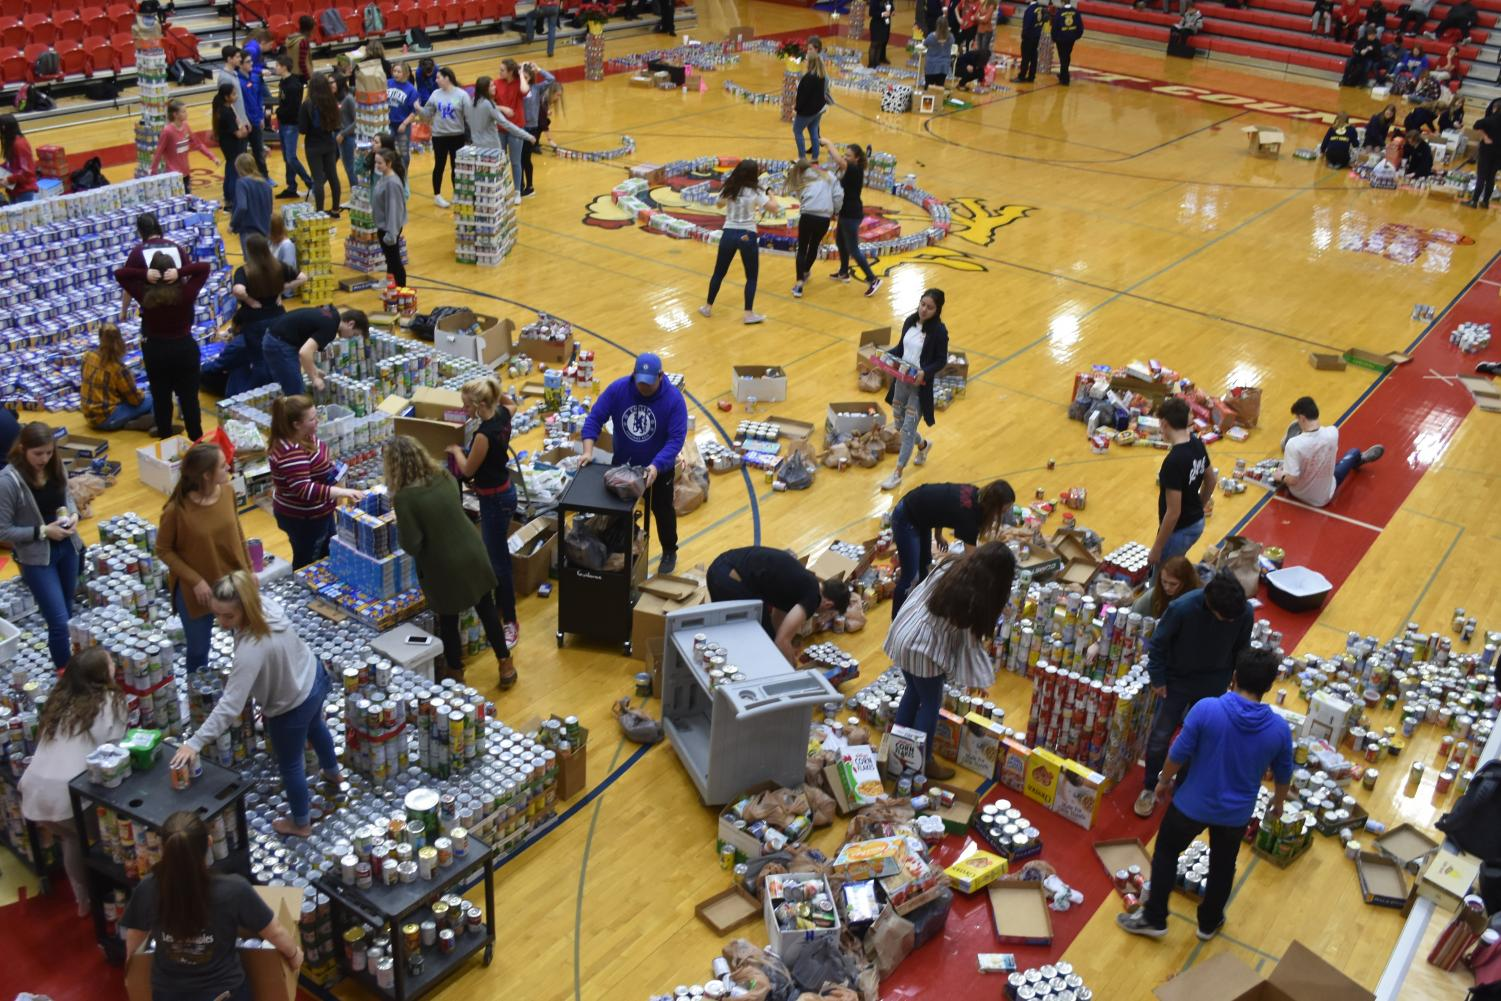 Team+Guidance+prepares+its+display+in+the+gym.++Guidance+was+the+winner+for+the+2018+food+drive+for+the+most+cans+donated.++